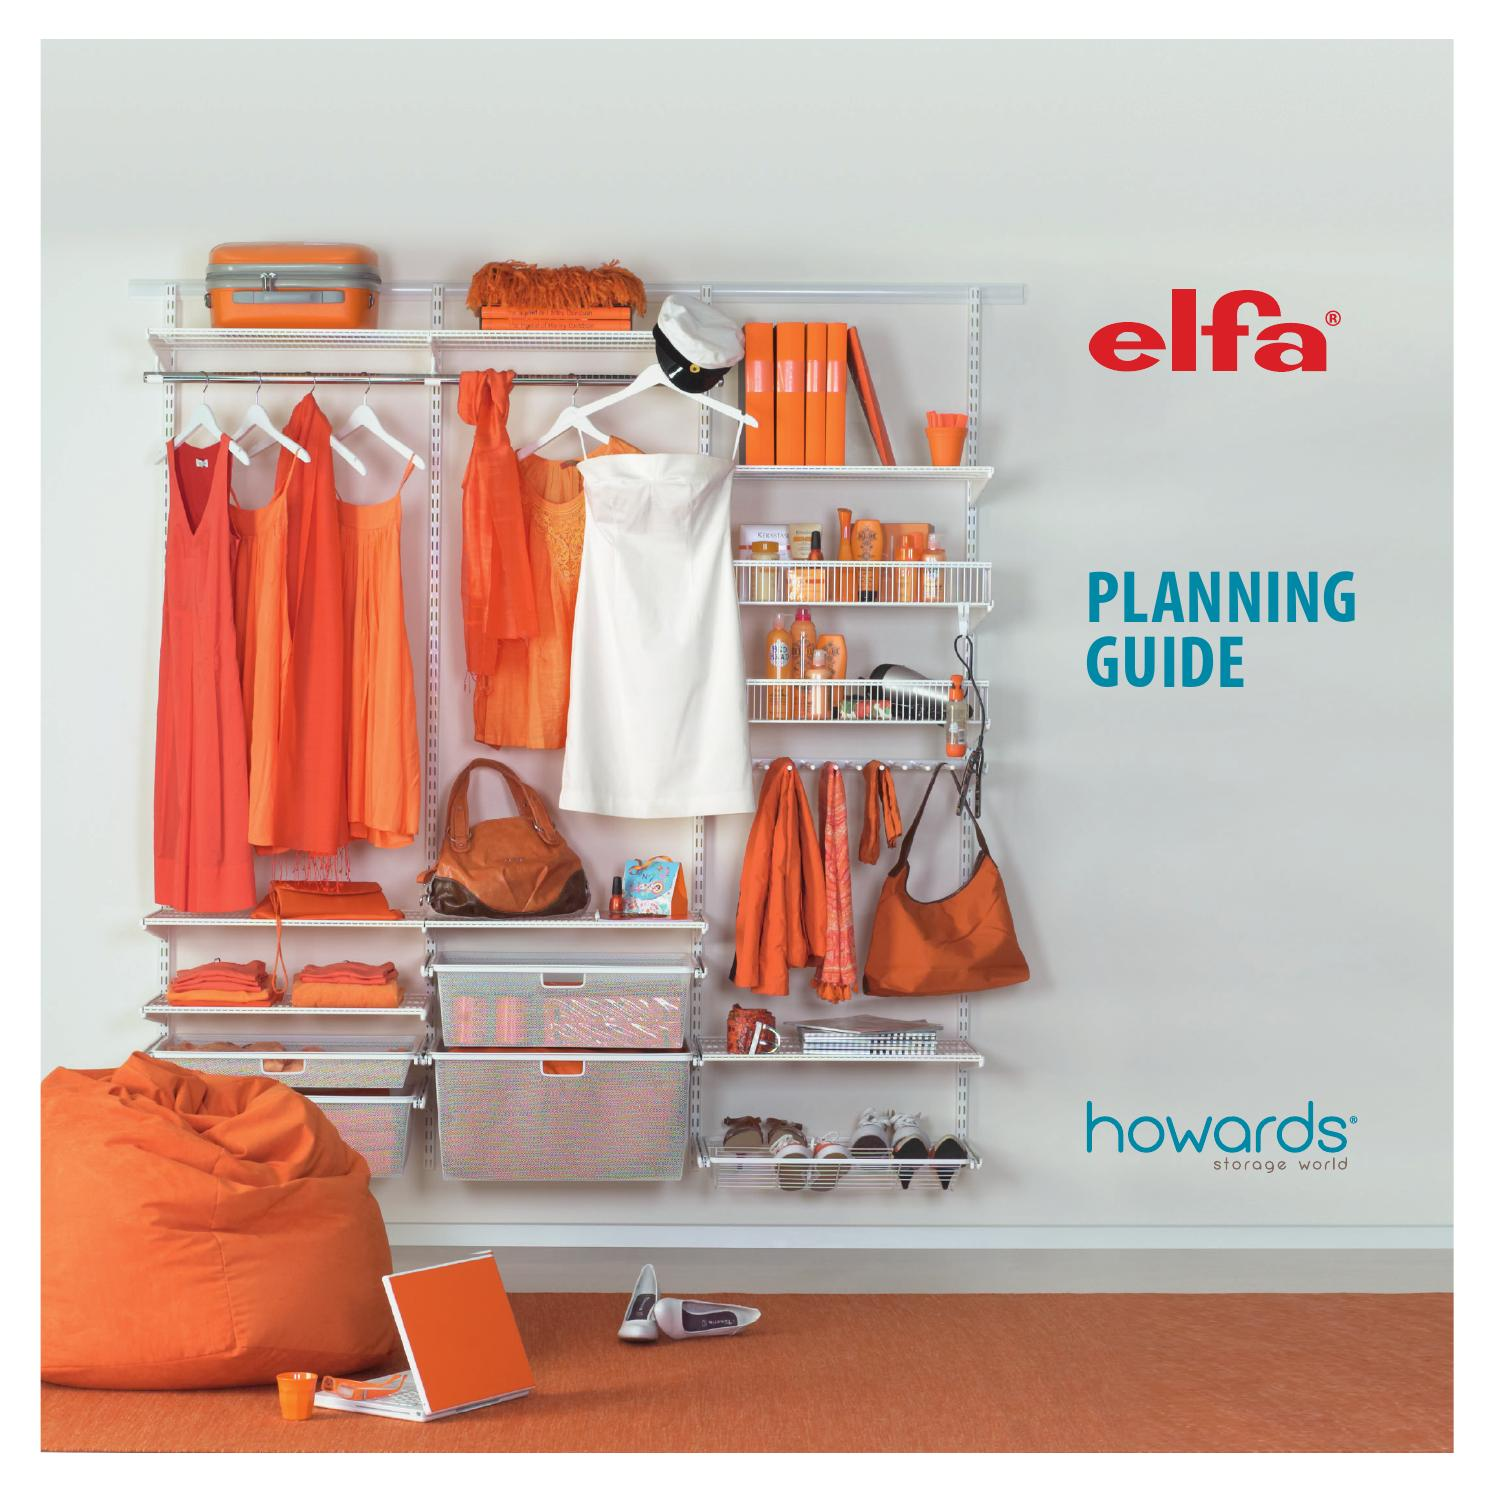 Singapore Elfa Planning Guide By Howards Storage World Aust